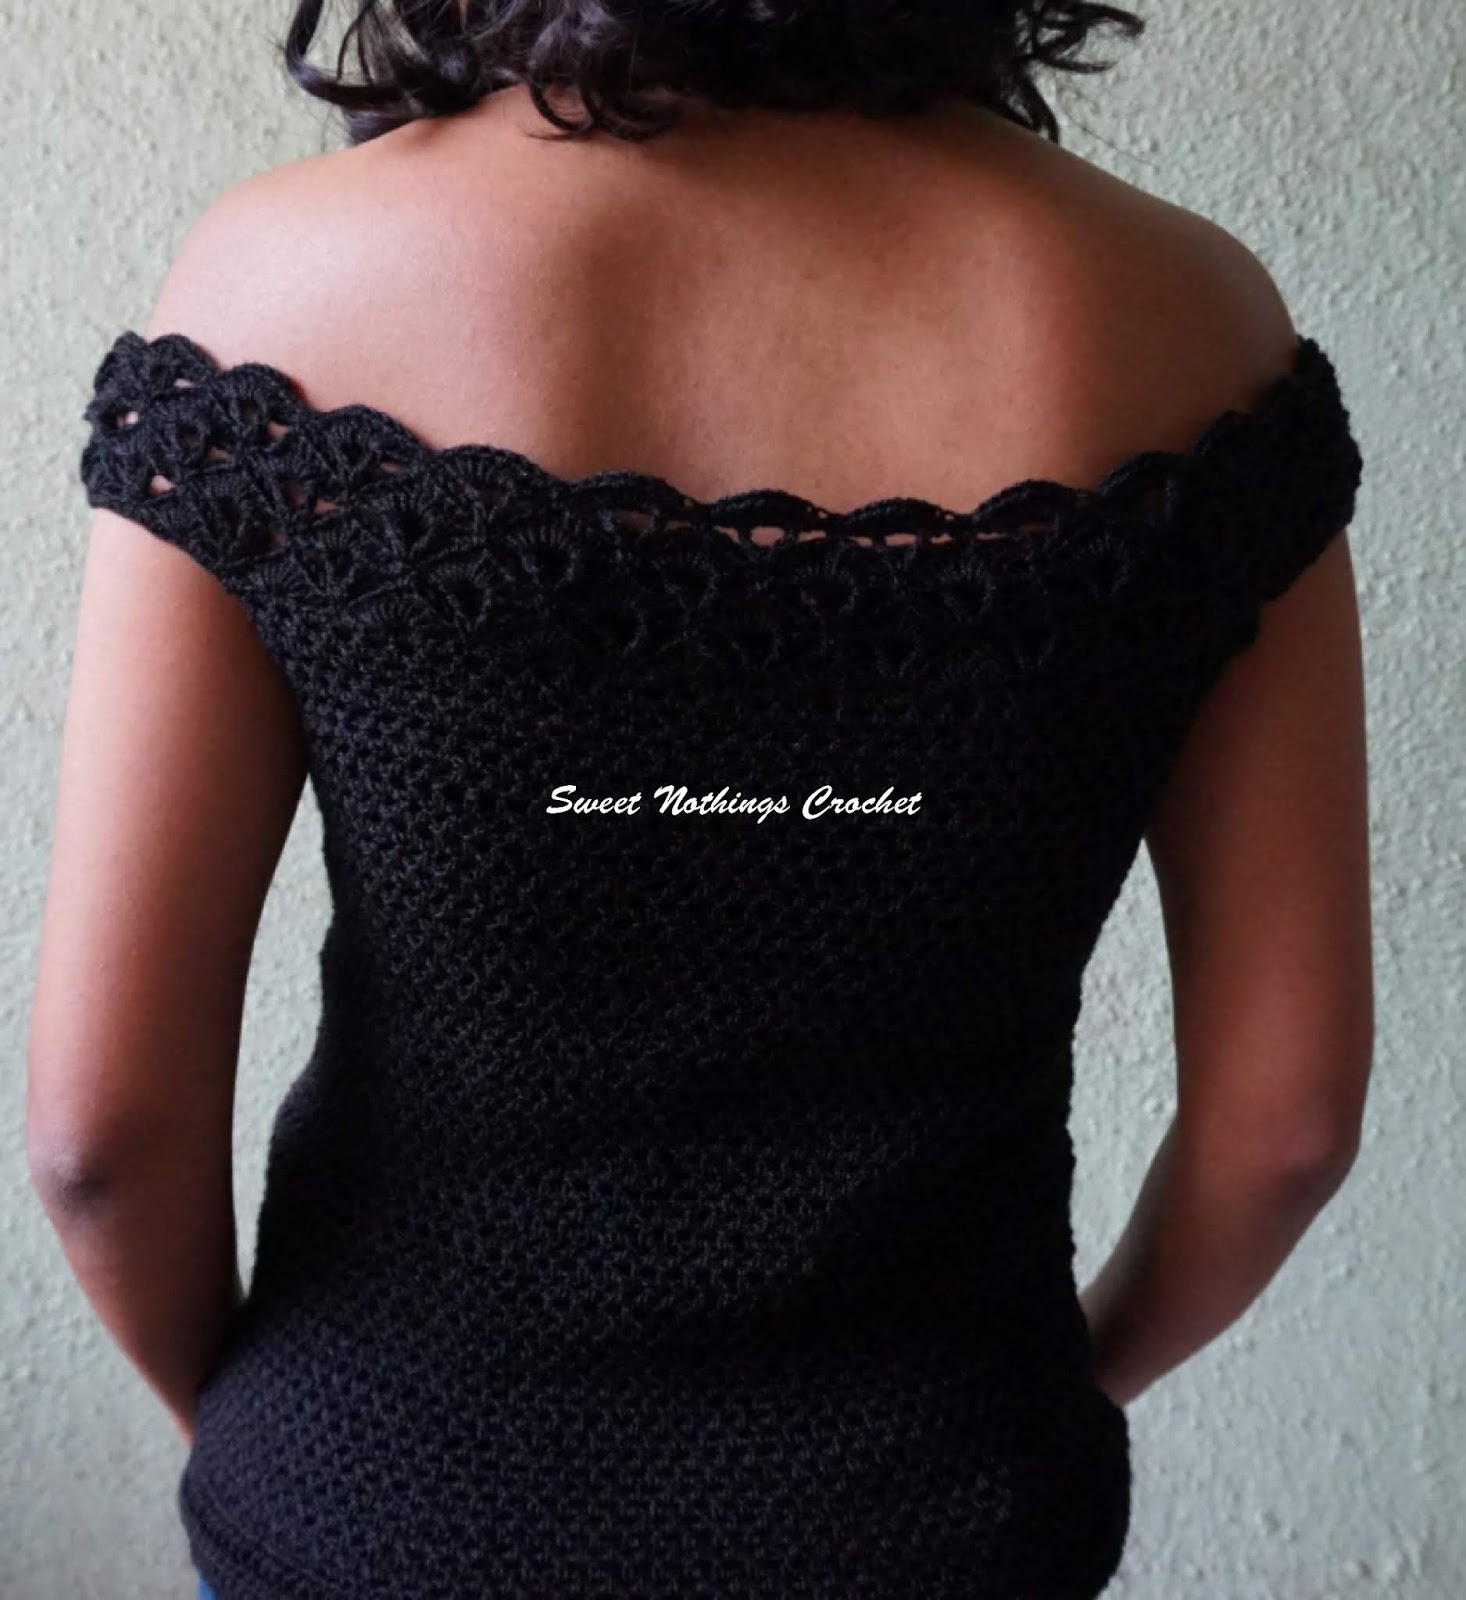 Sweet Nothings Crochet Unique Shelled Off The Shoulder Top